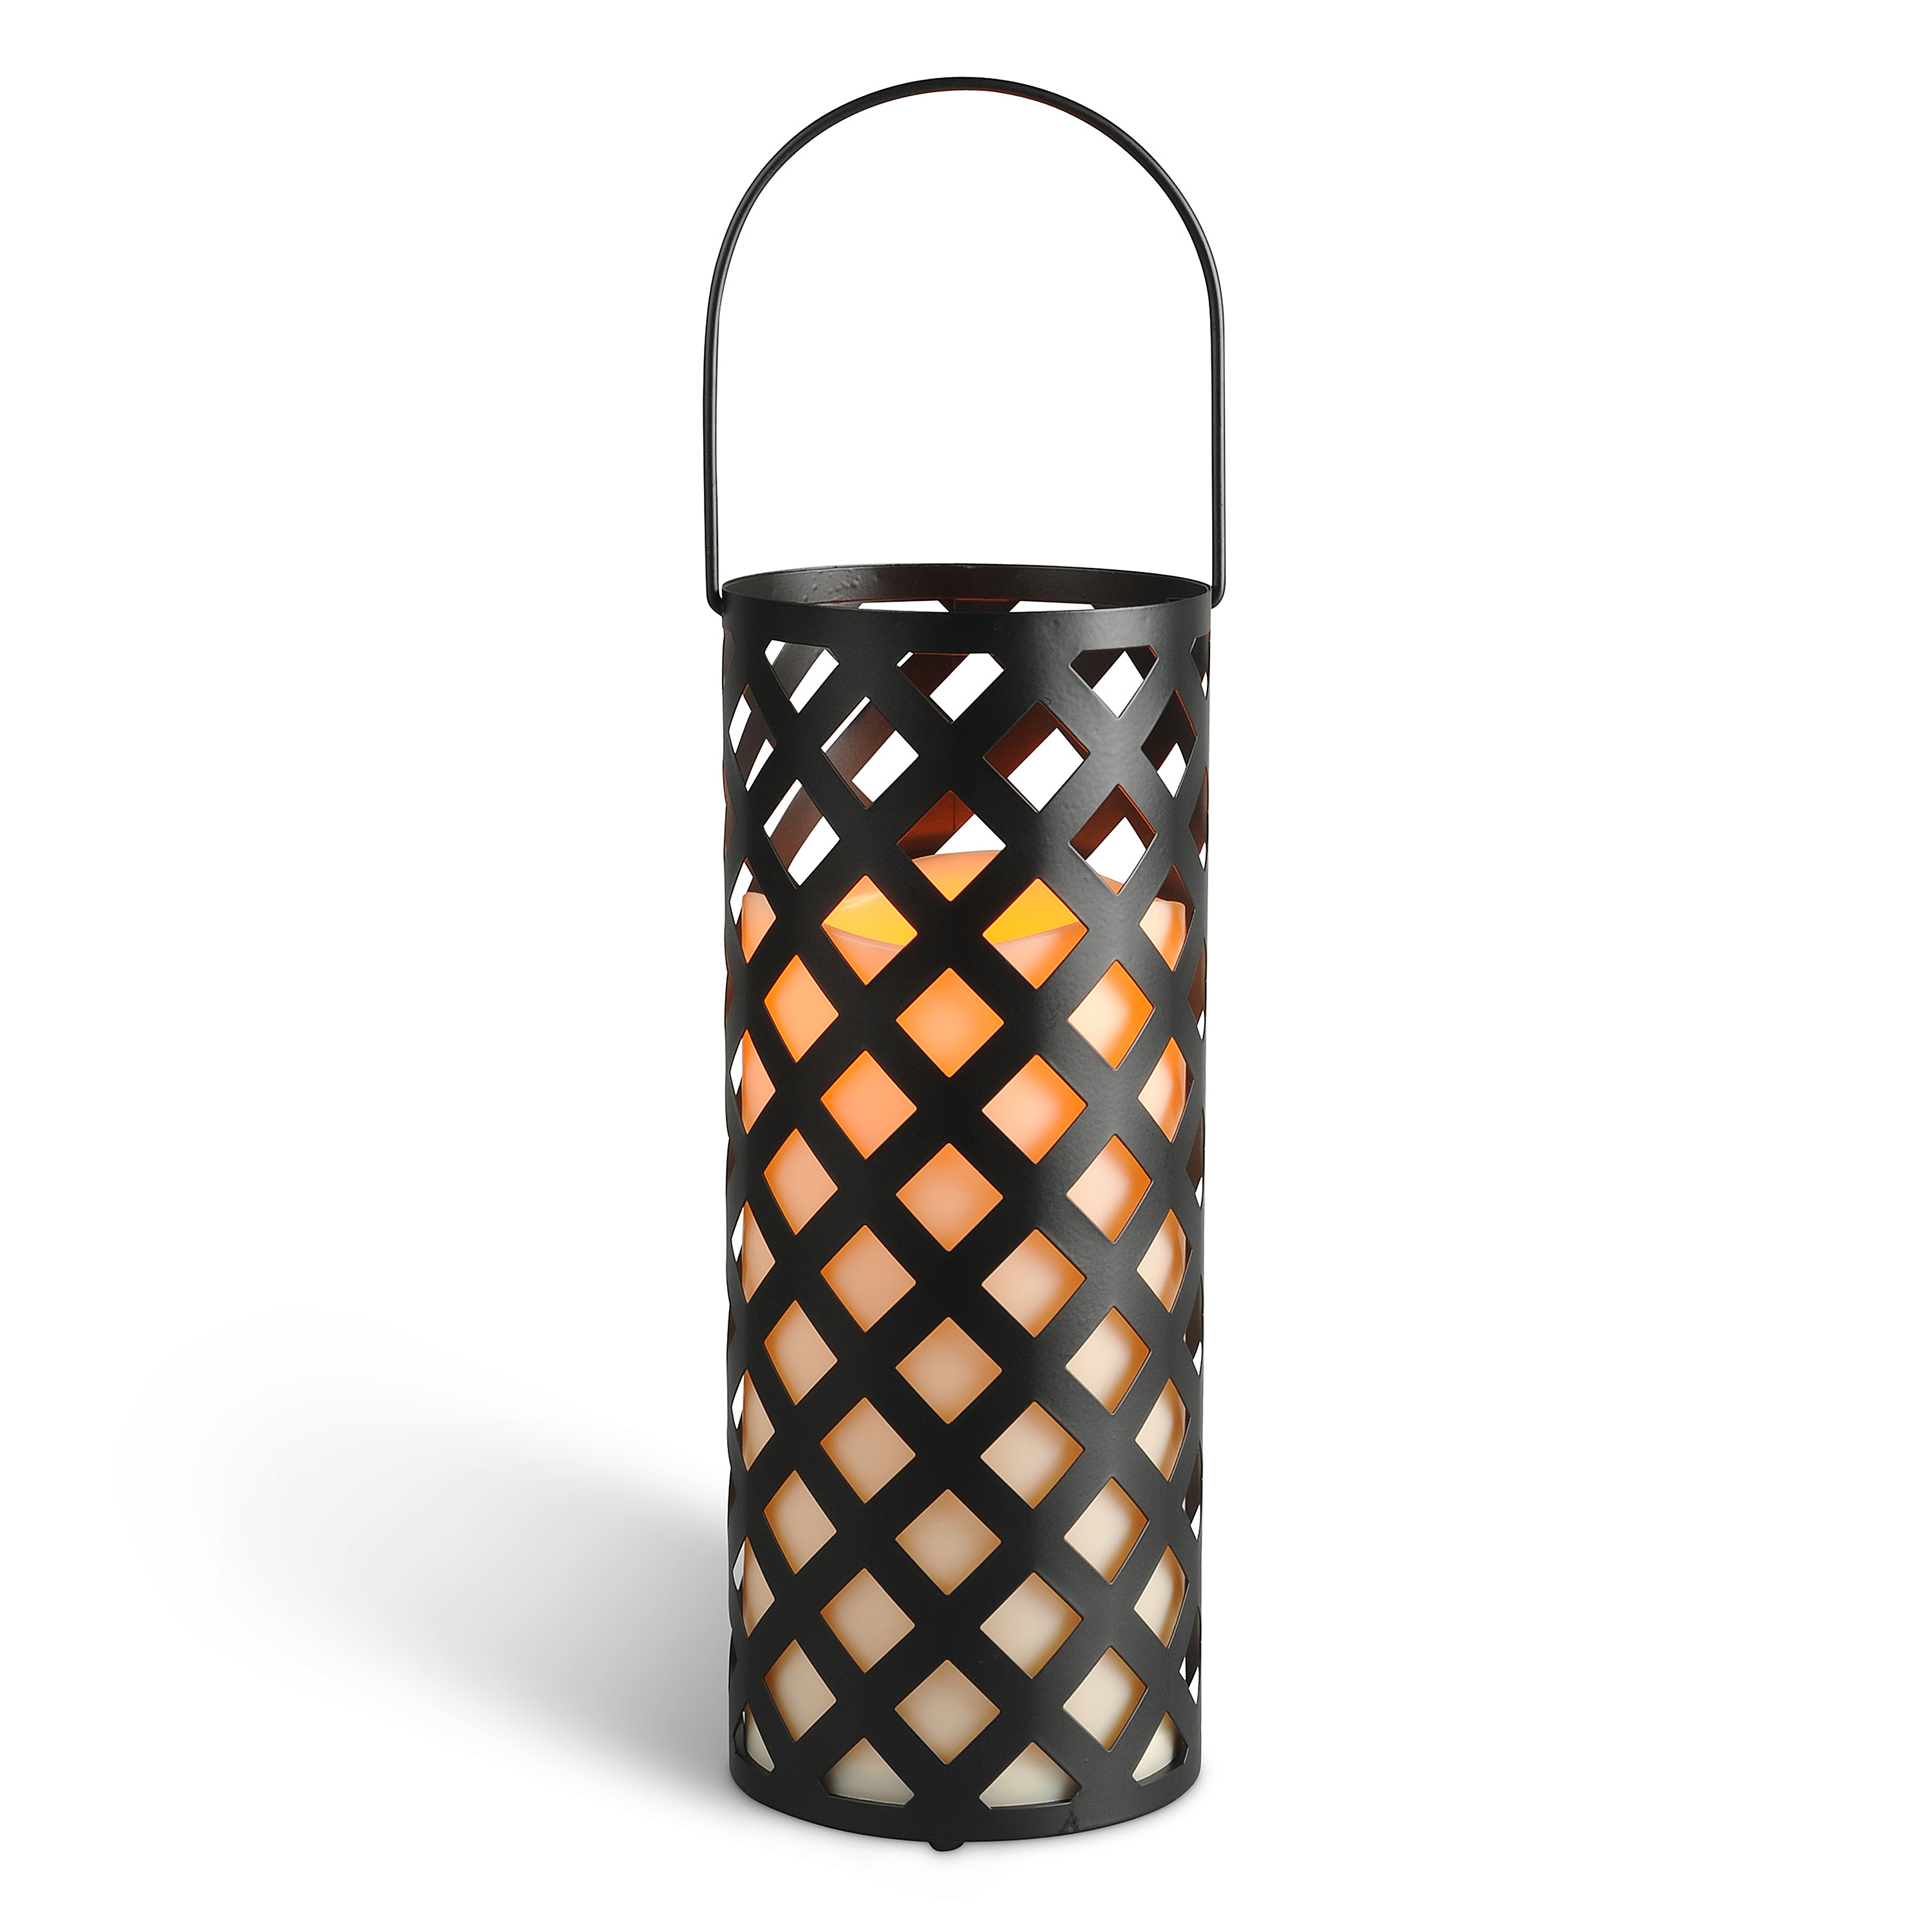 12.3-Inch Tall Round Criss-Cross Lantern with LED Candle and Timer Feature